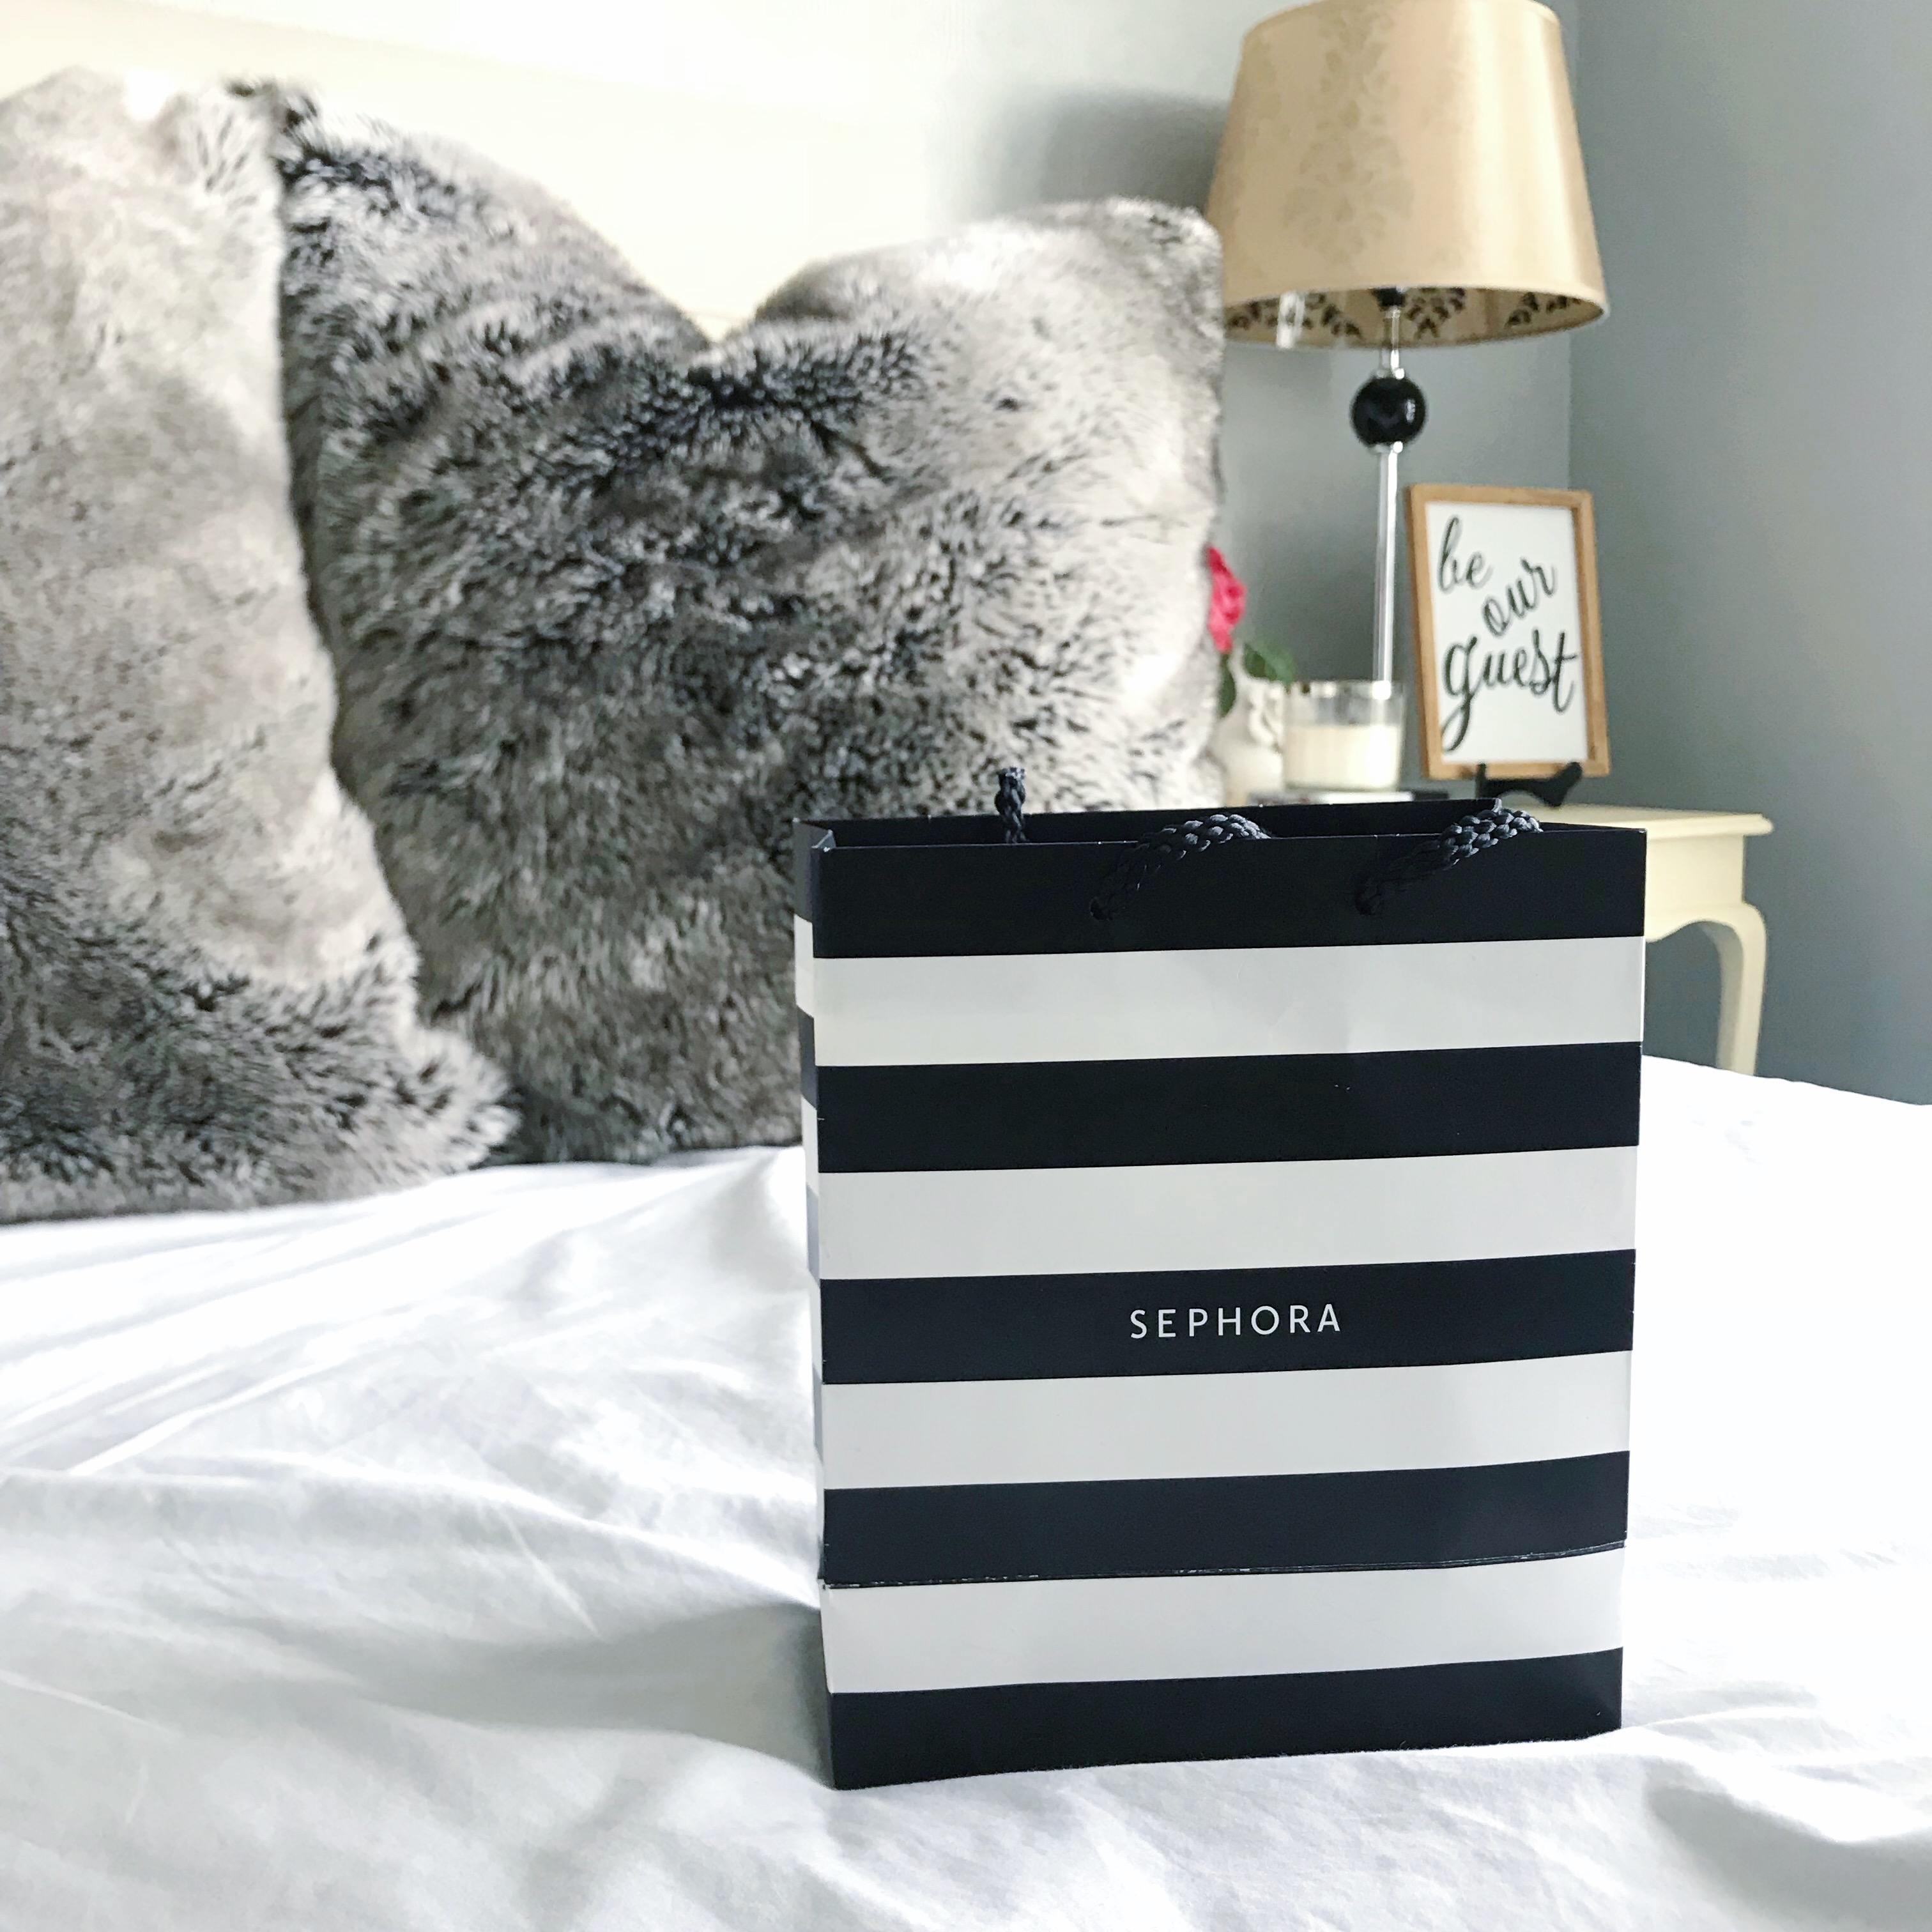 Sephora in store coupons october 2018